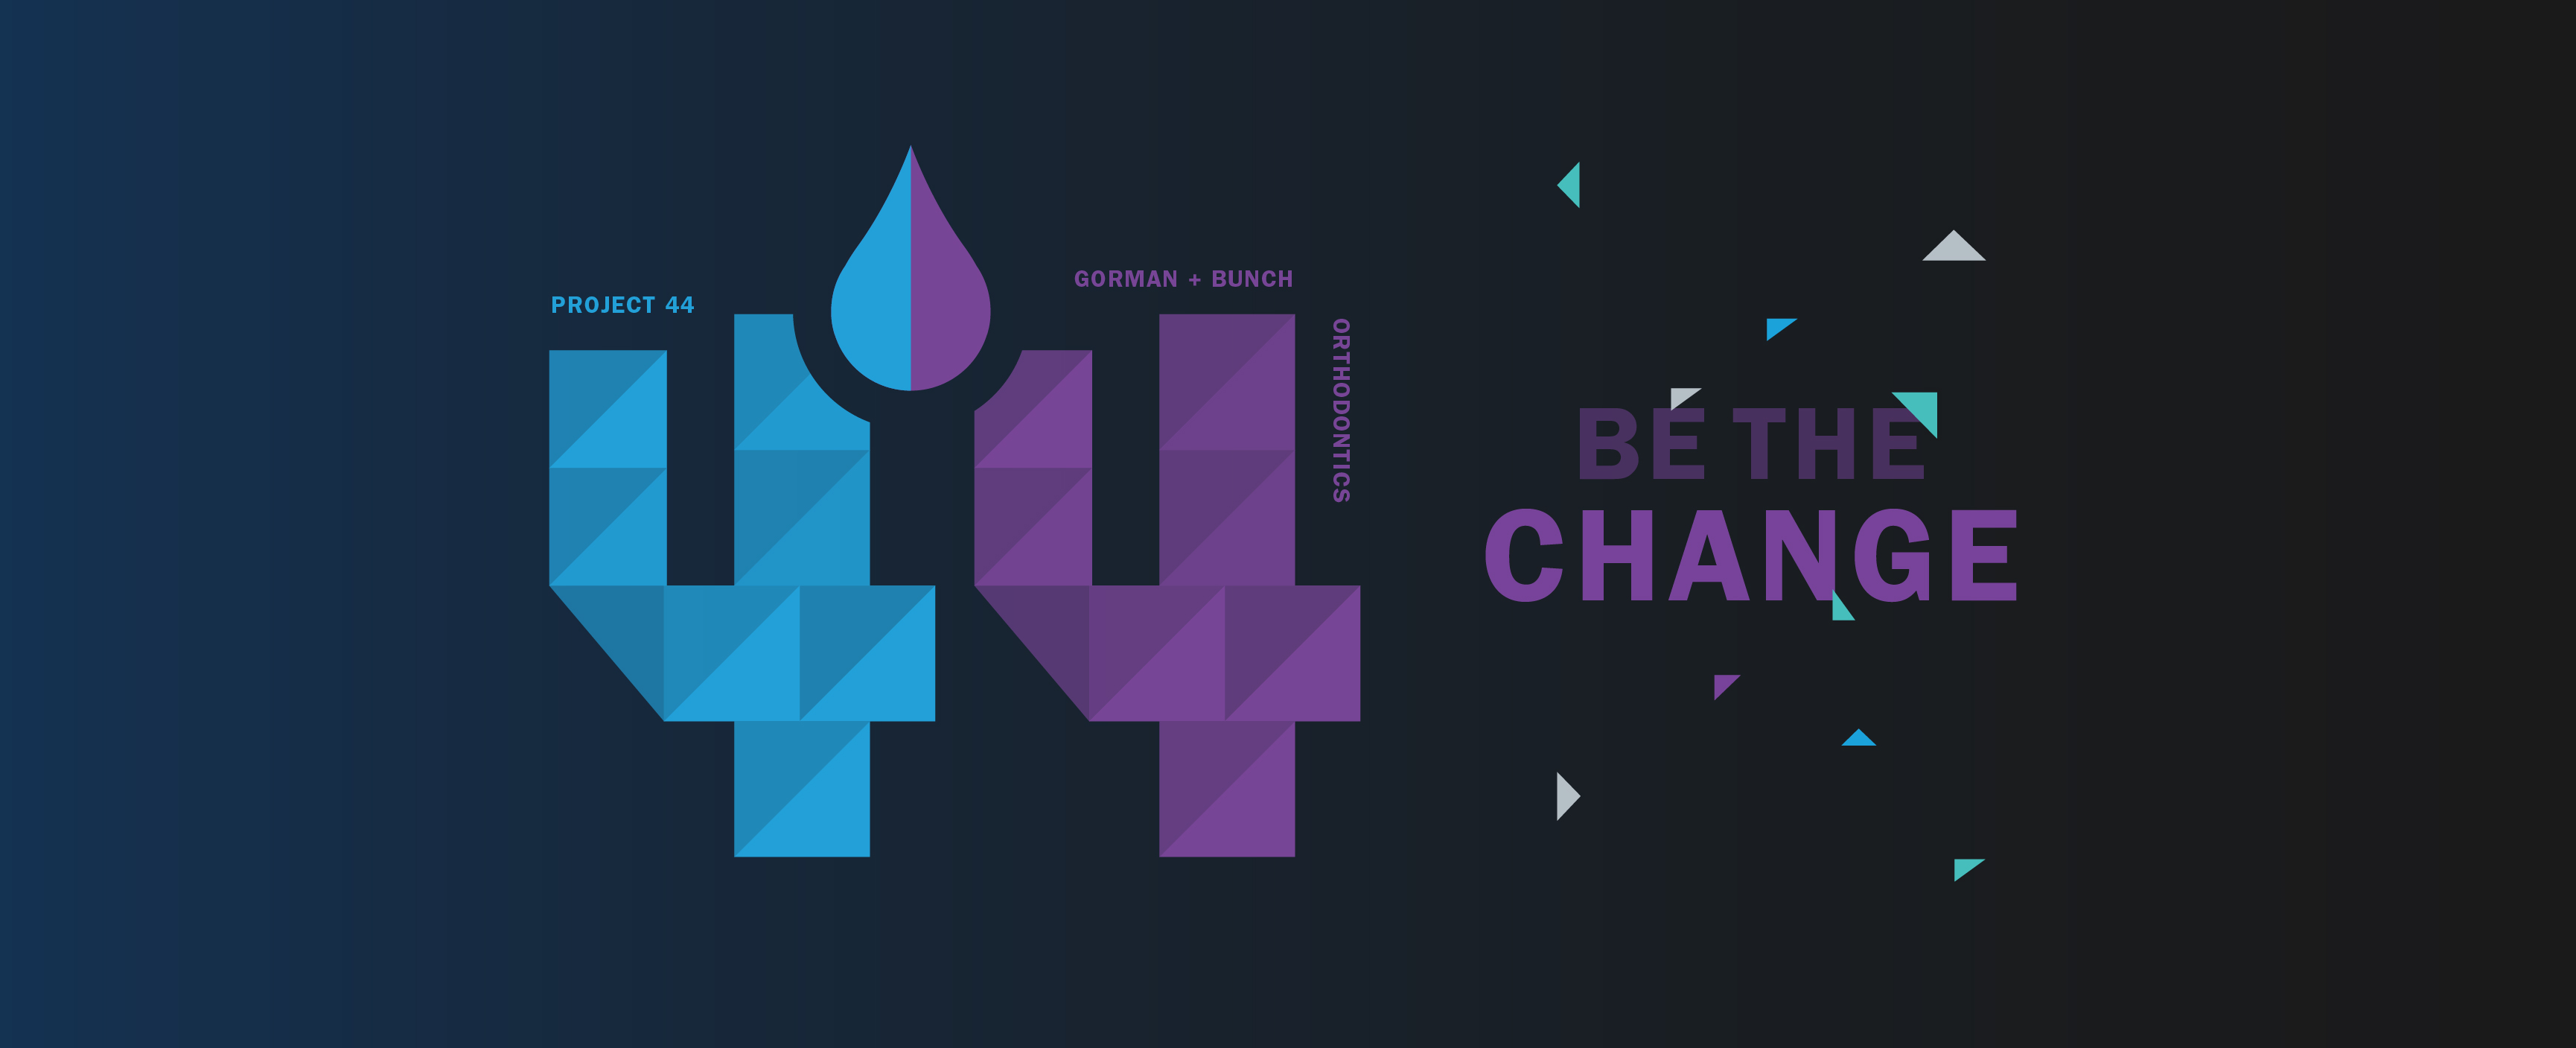 Be the Change - Project 44